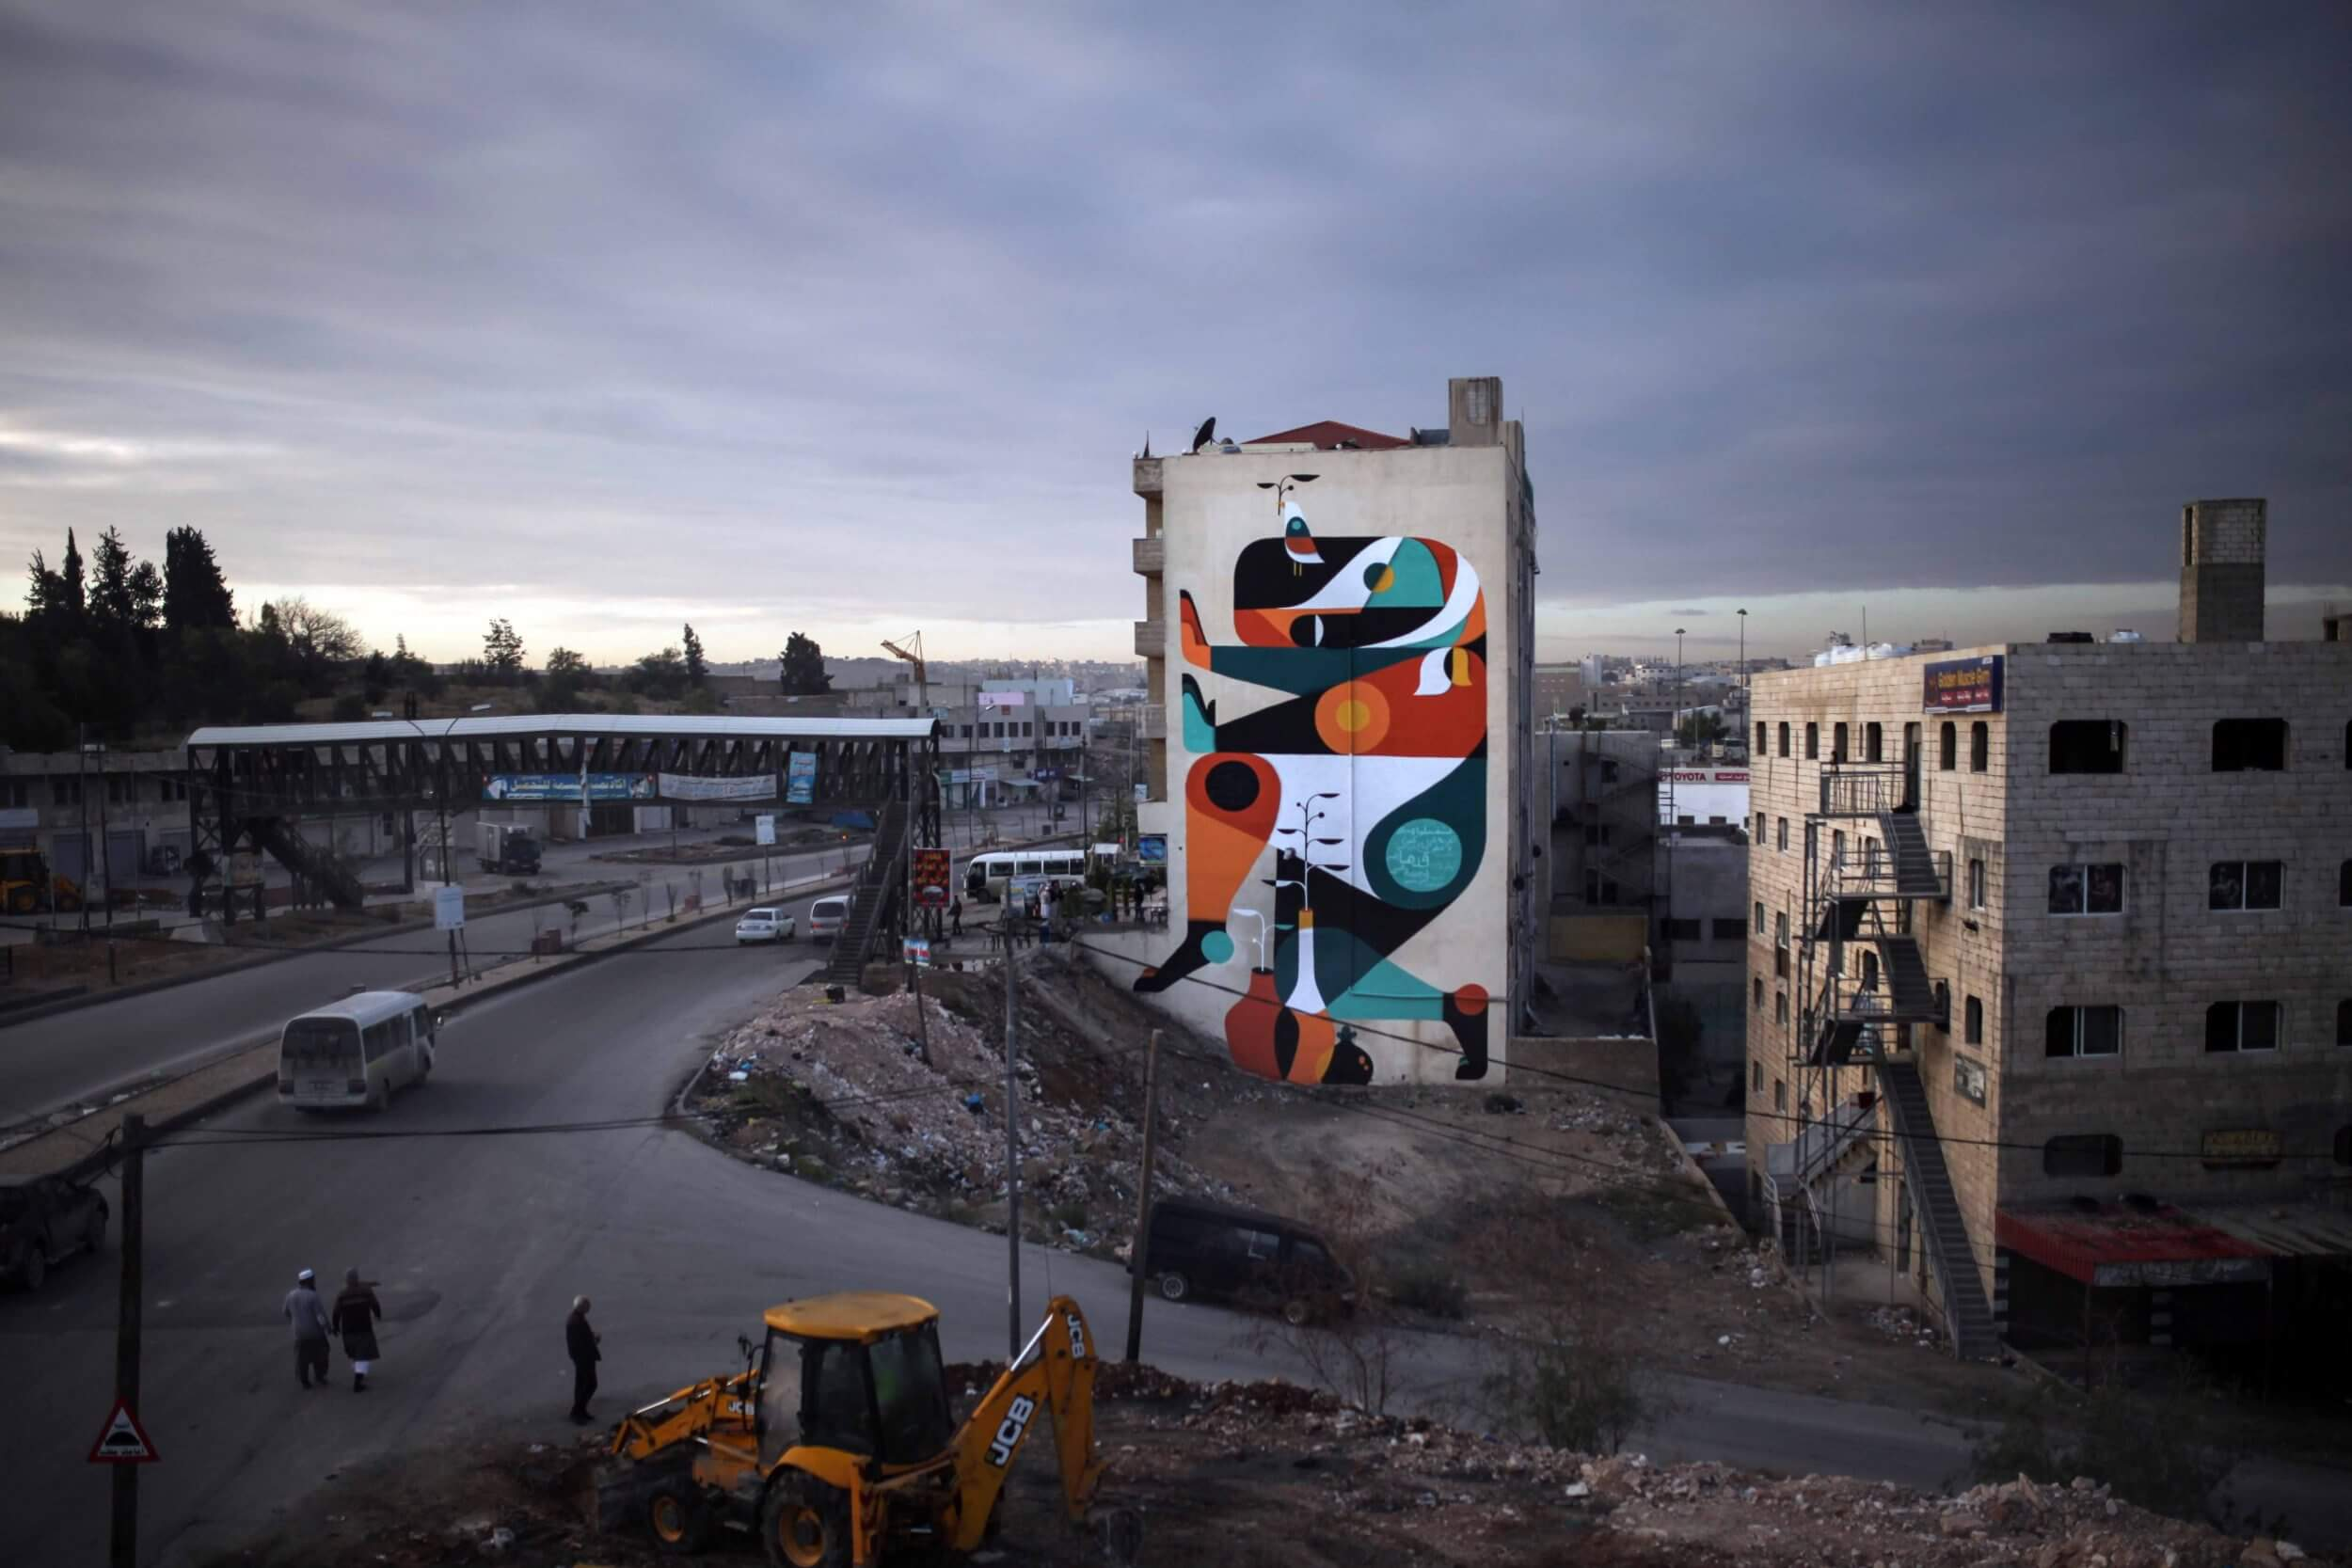 Interview with Ruben Sanchez about his wall in Jordan for OPEN SPACE